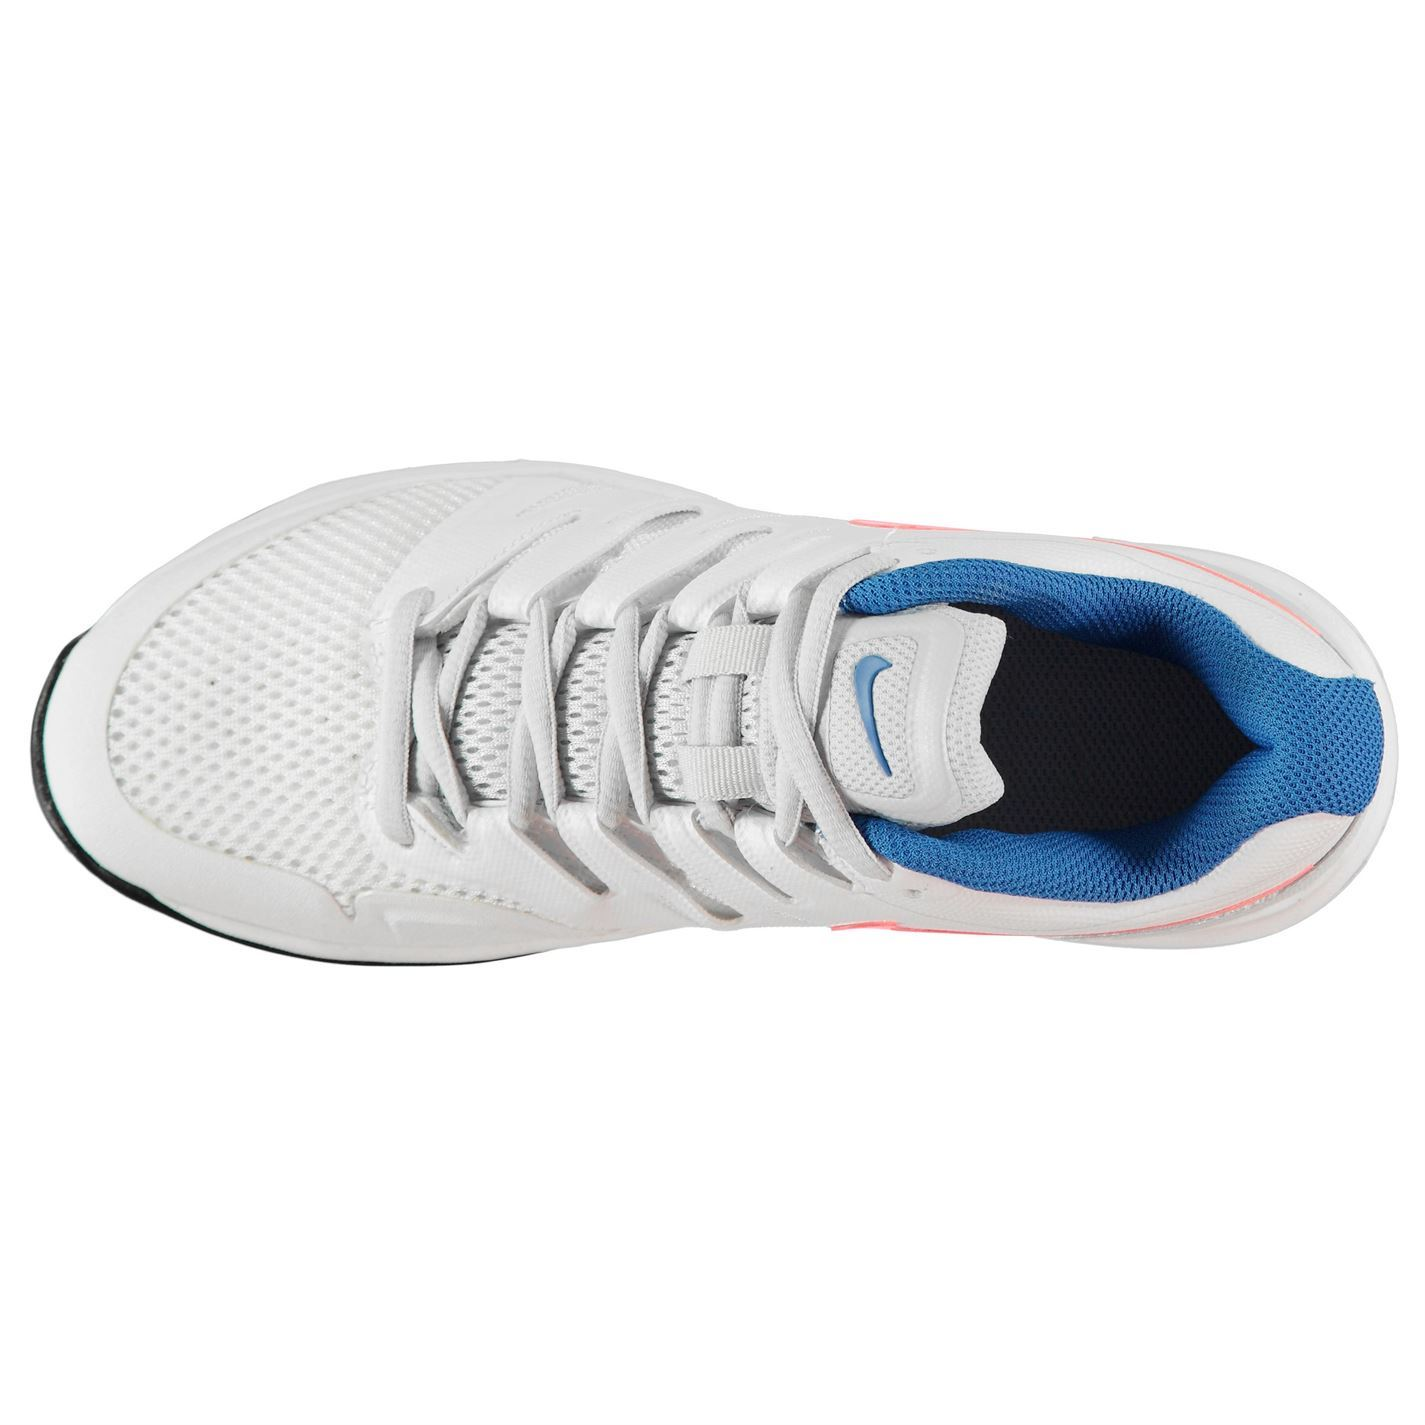 online store f12b0 132cf ... Nike Air Zoom Prestige Tennis Shoes Womens WhiteLava Court Trainers  Sneakers